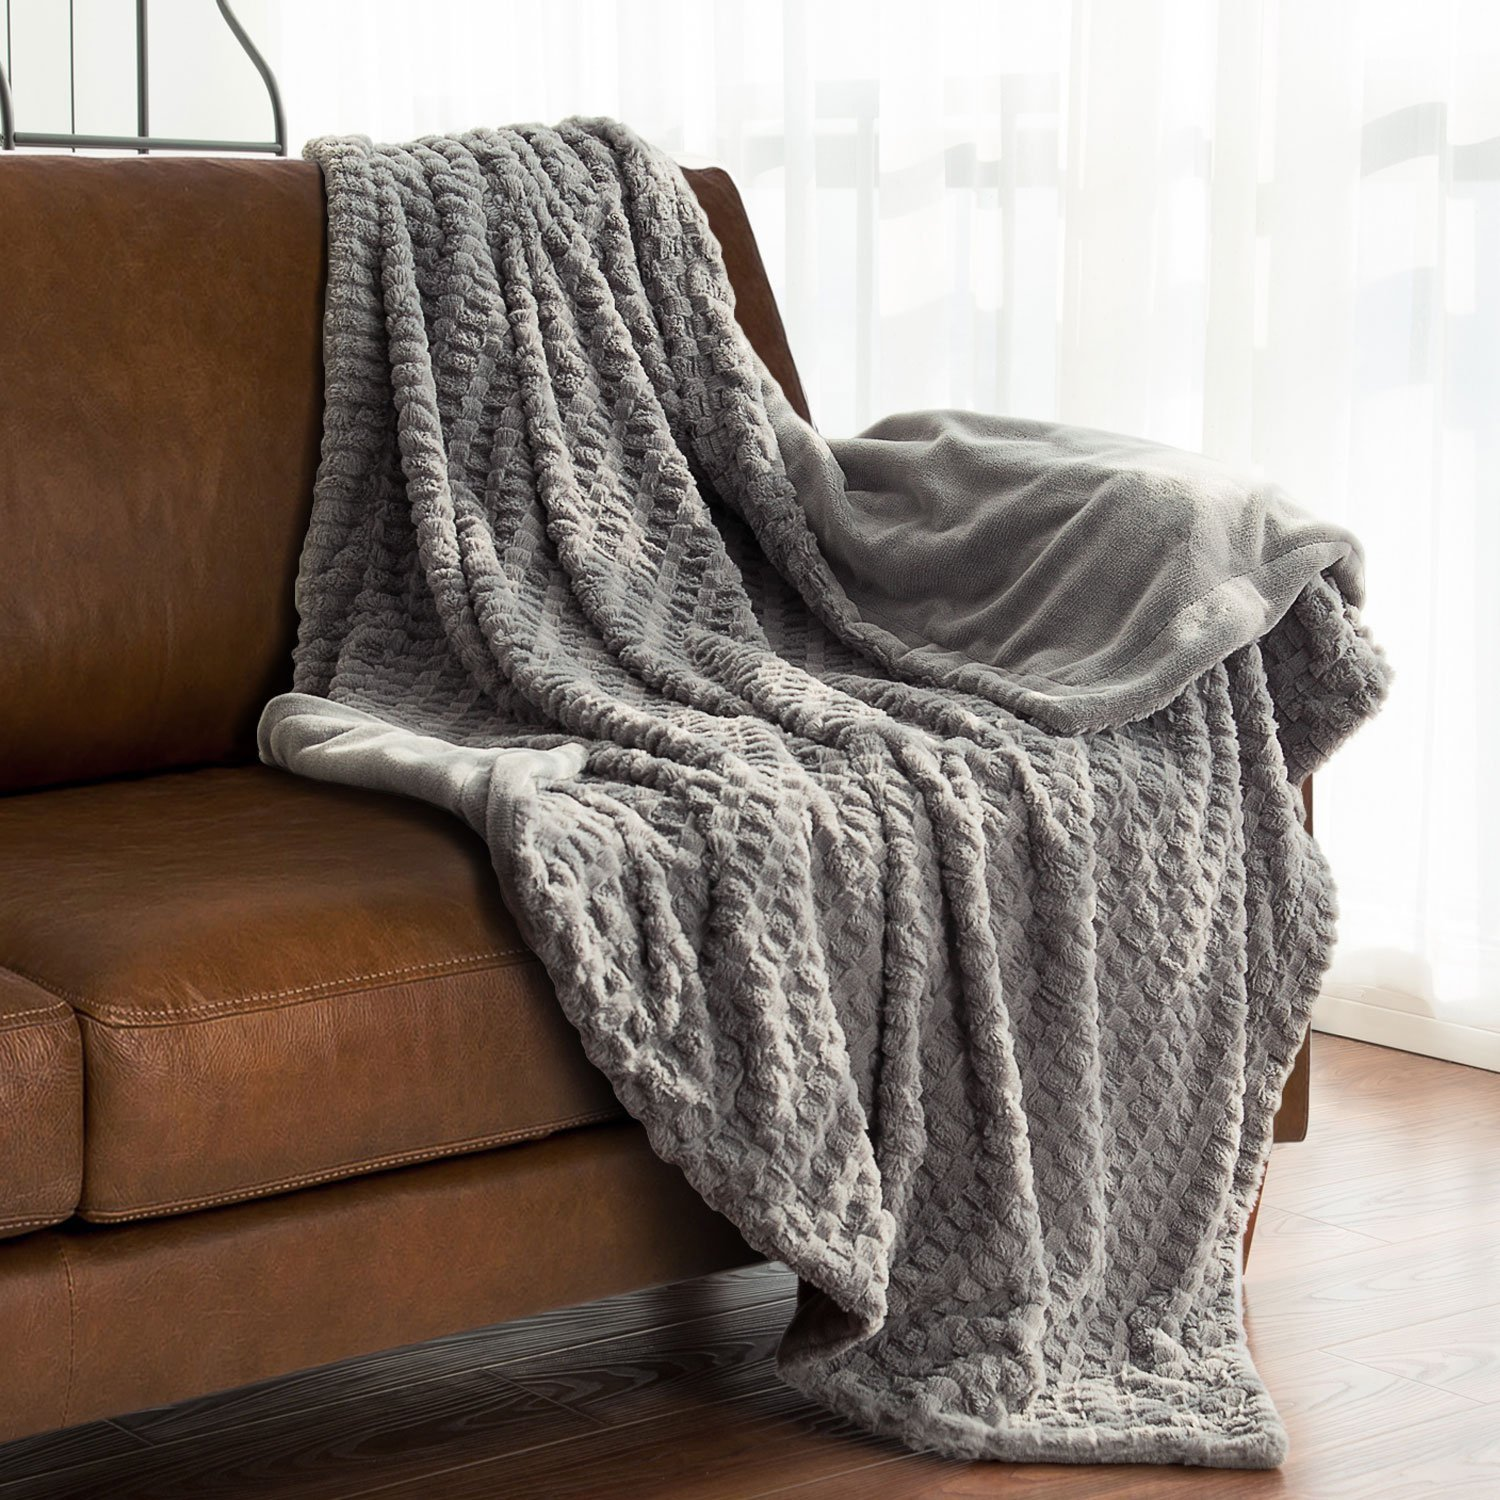 "Faux Fur Throw Blanket Fleece Bed Blanket 60""x80"" Solid Grey, Super Soft & Warm, Reversible with Flannel"